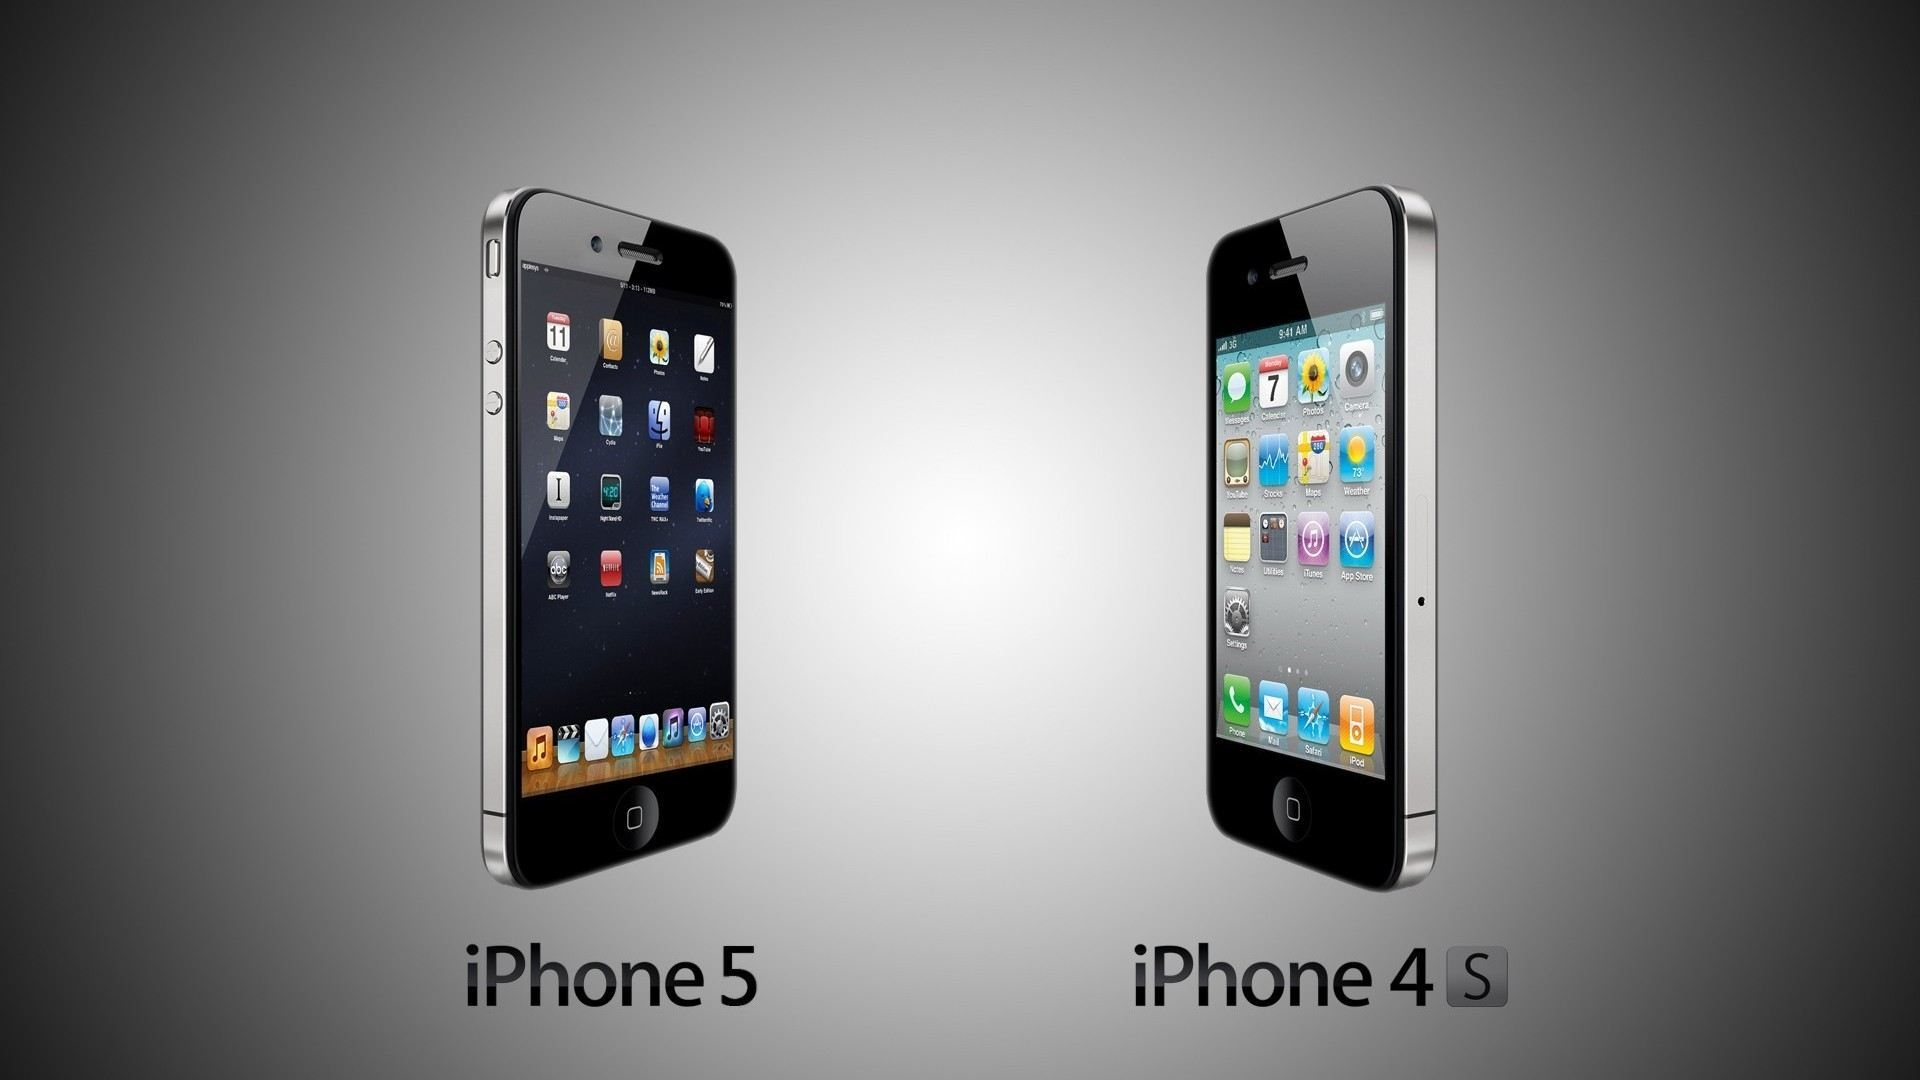 iphone 5 vs iphone 4s high definition wallpapers hd